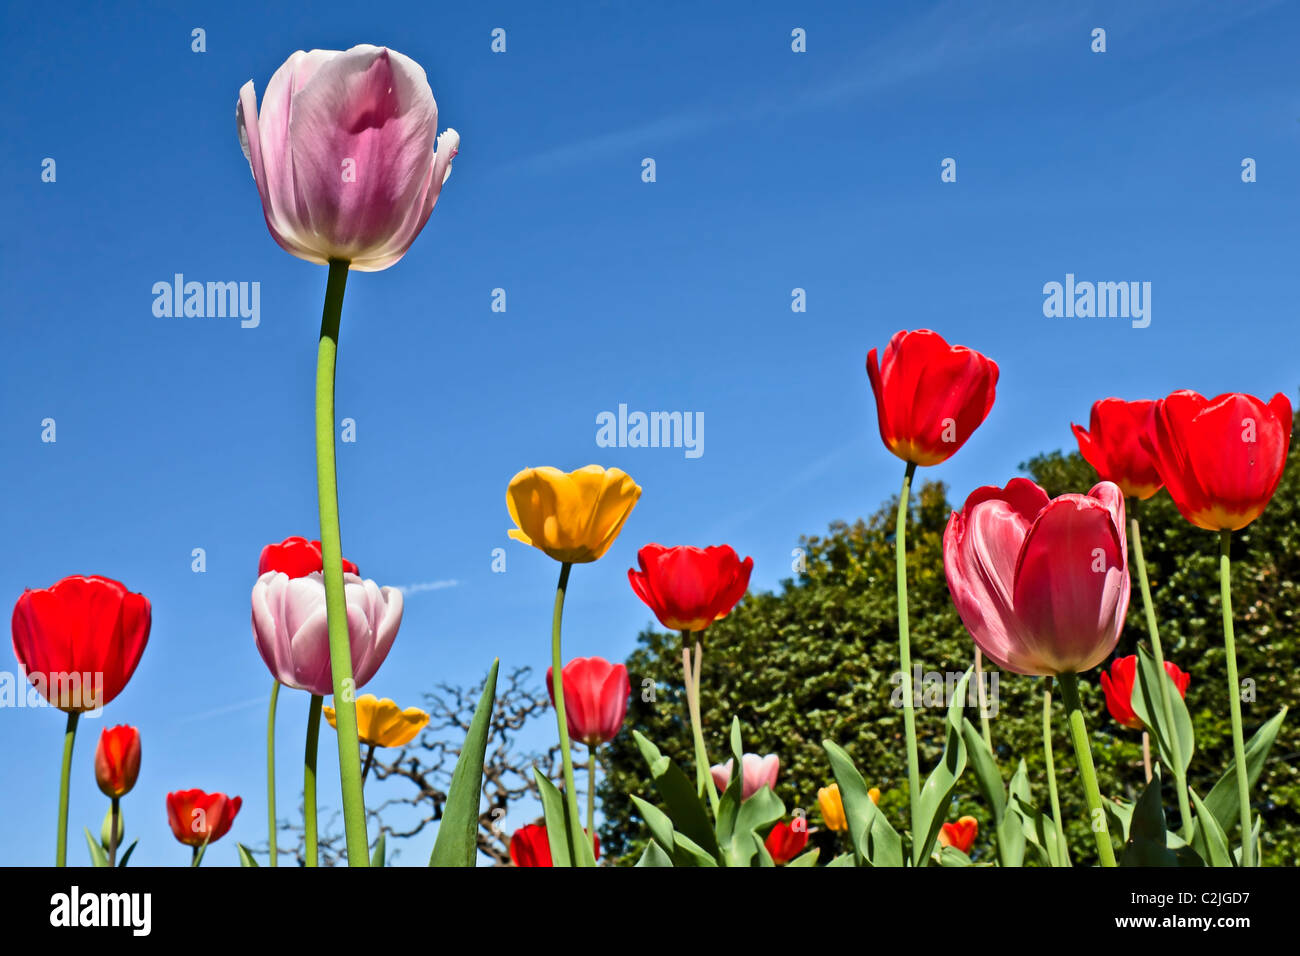 spring feeling - tulips - Stock Image